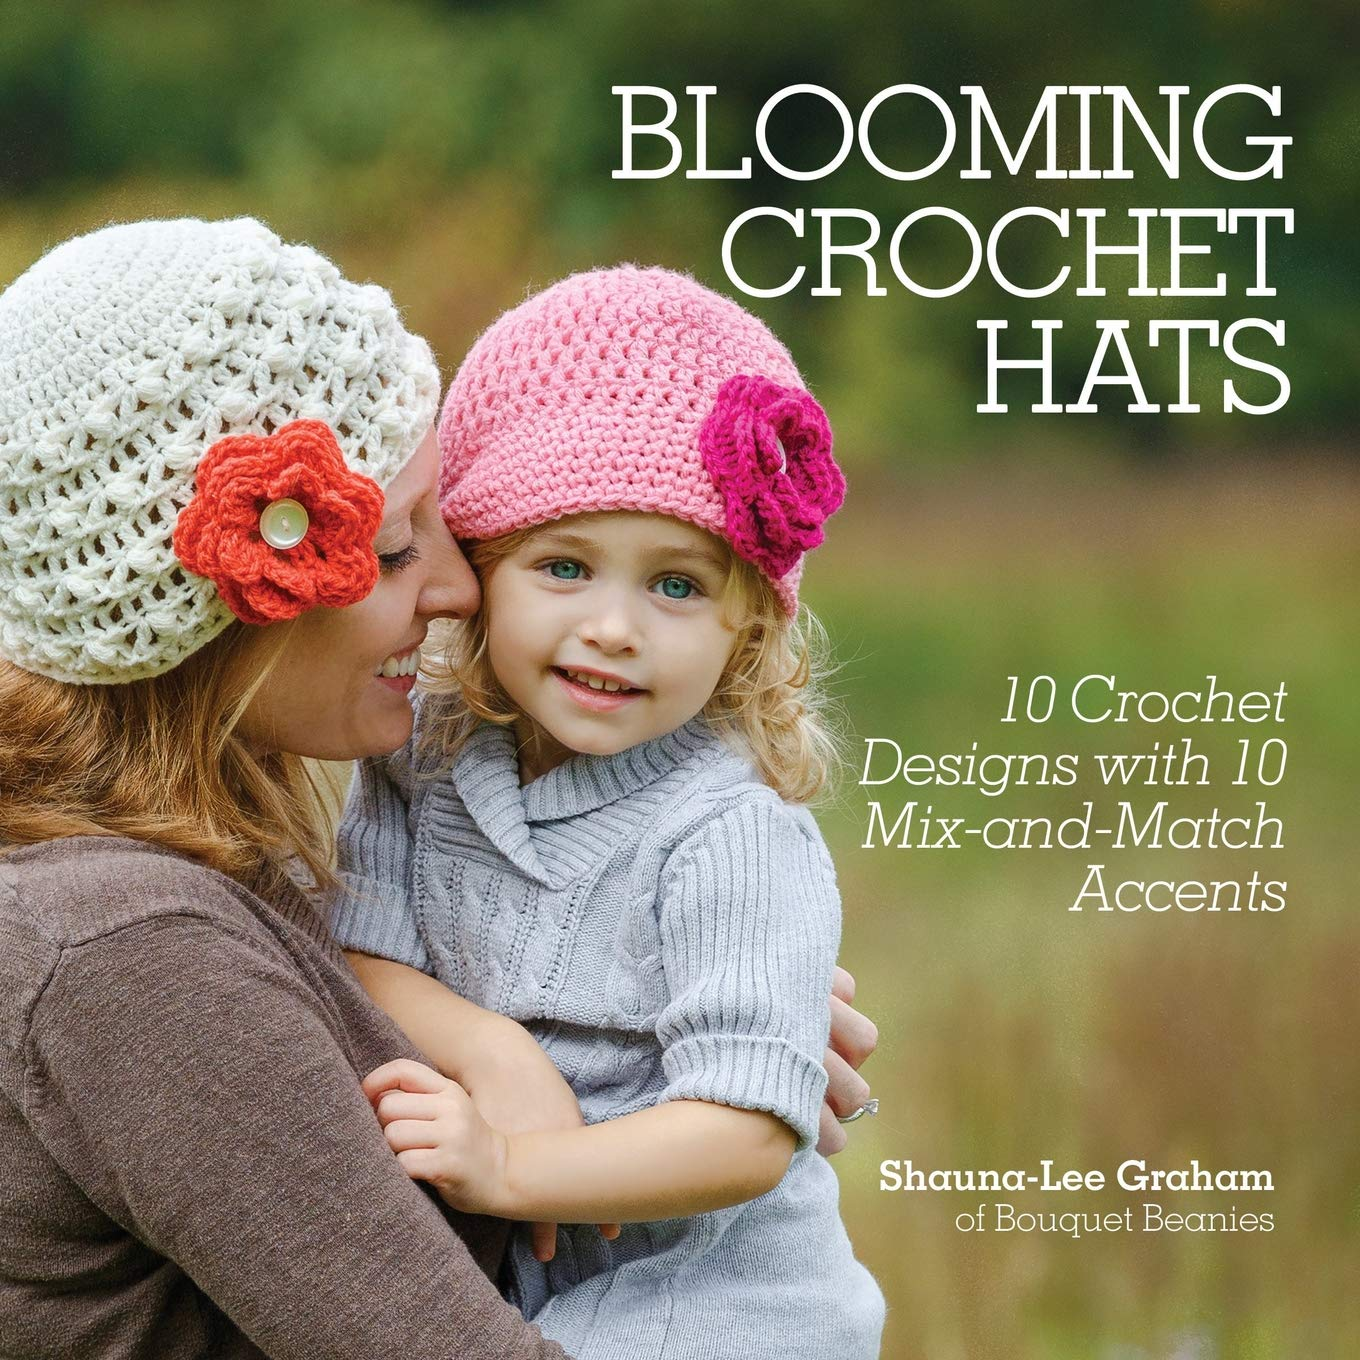 Blooming Crochet Hats: 10 Crochet Designs with 10 Mix-and-Match Accents Paperback – Abridged, May 13, 2014 Shauna-Lee Graham KP Craft 1440237557 KP-37553